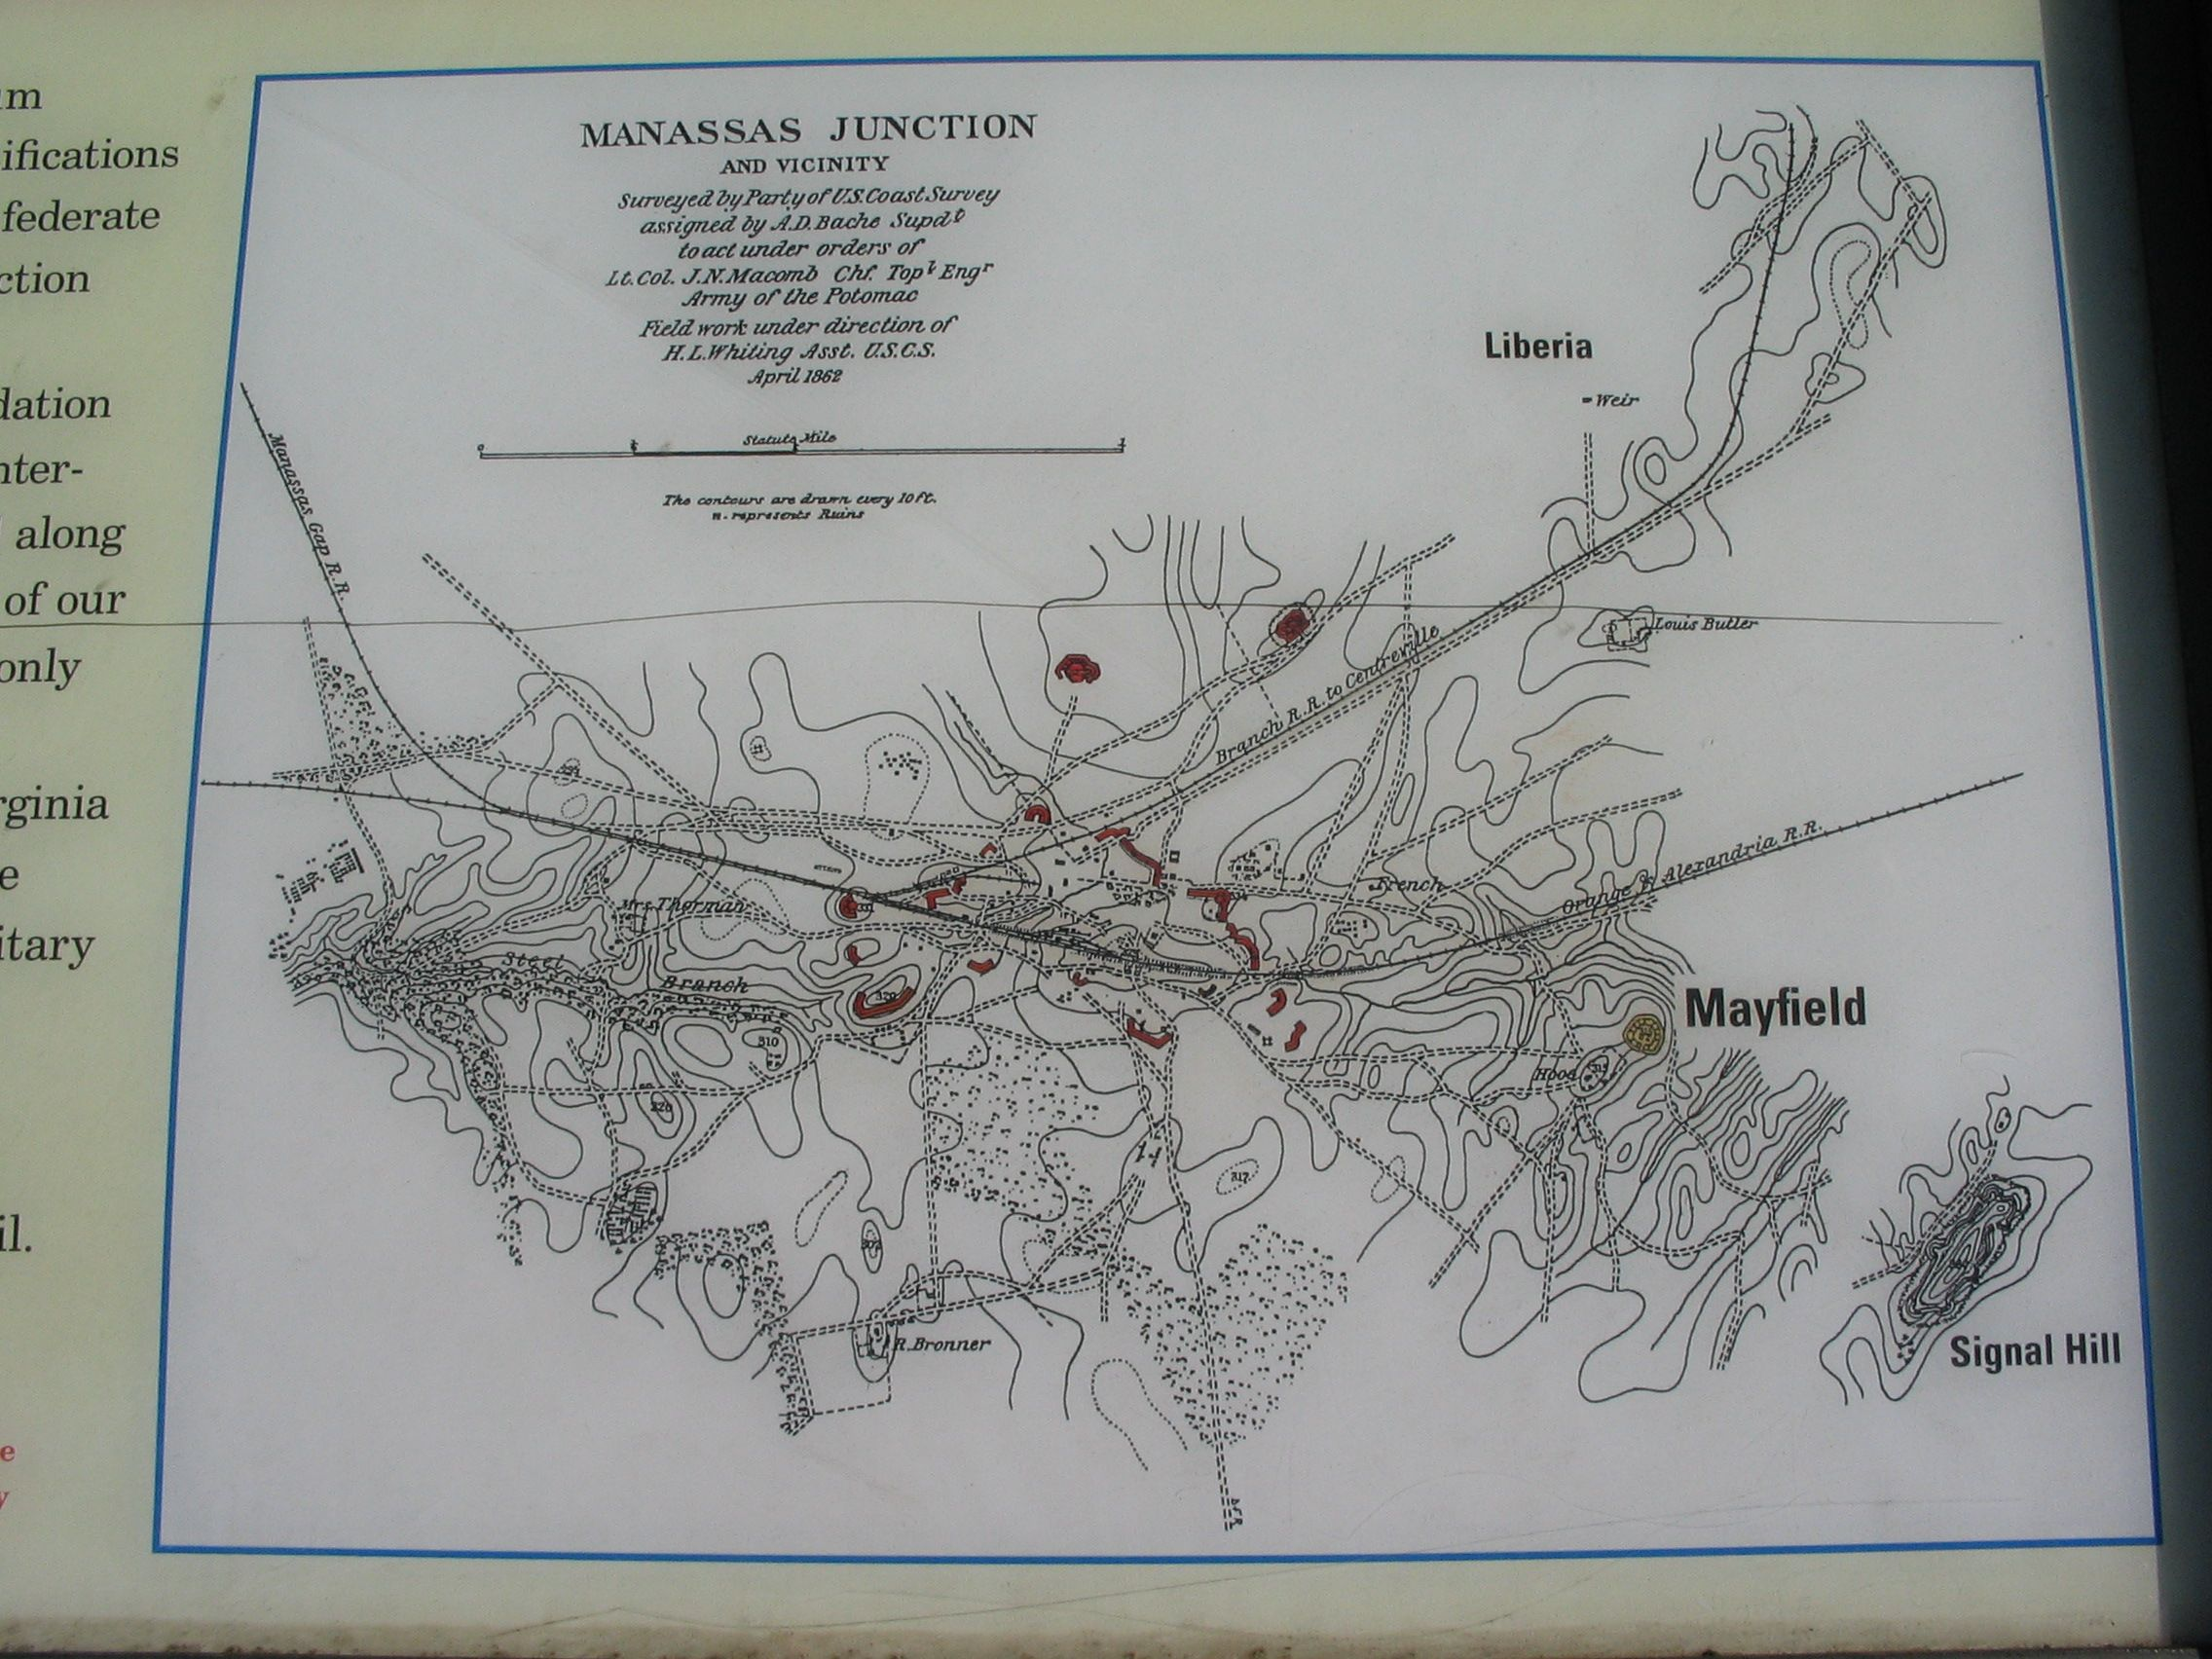 Close Up View of the Map